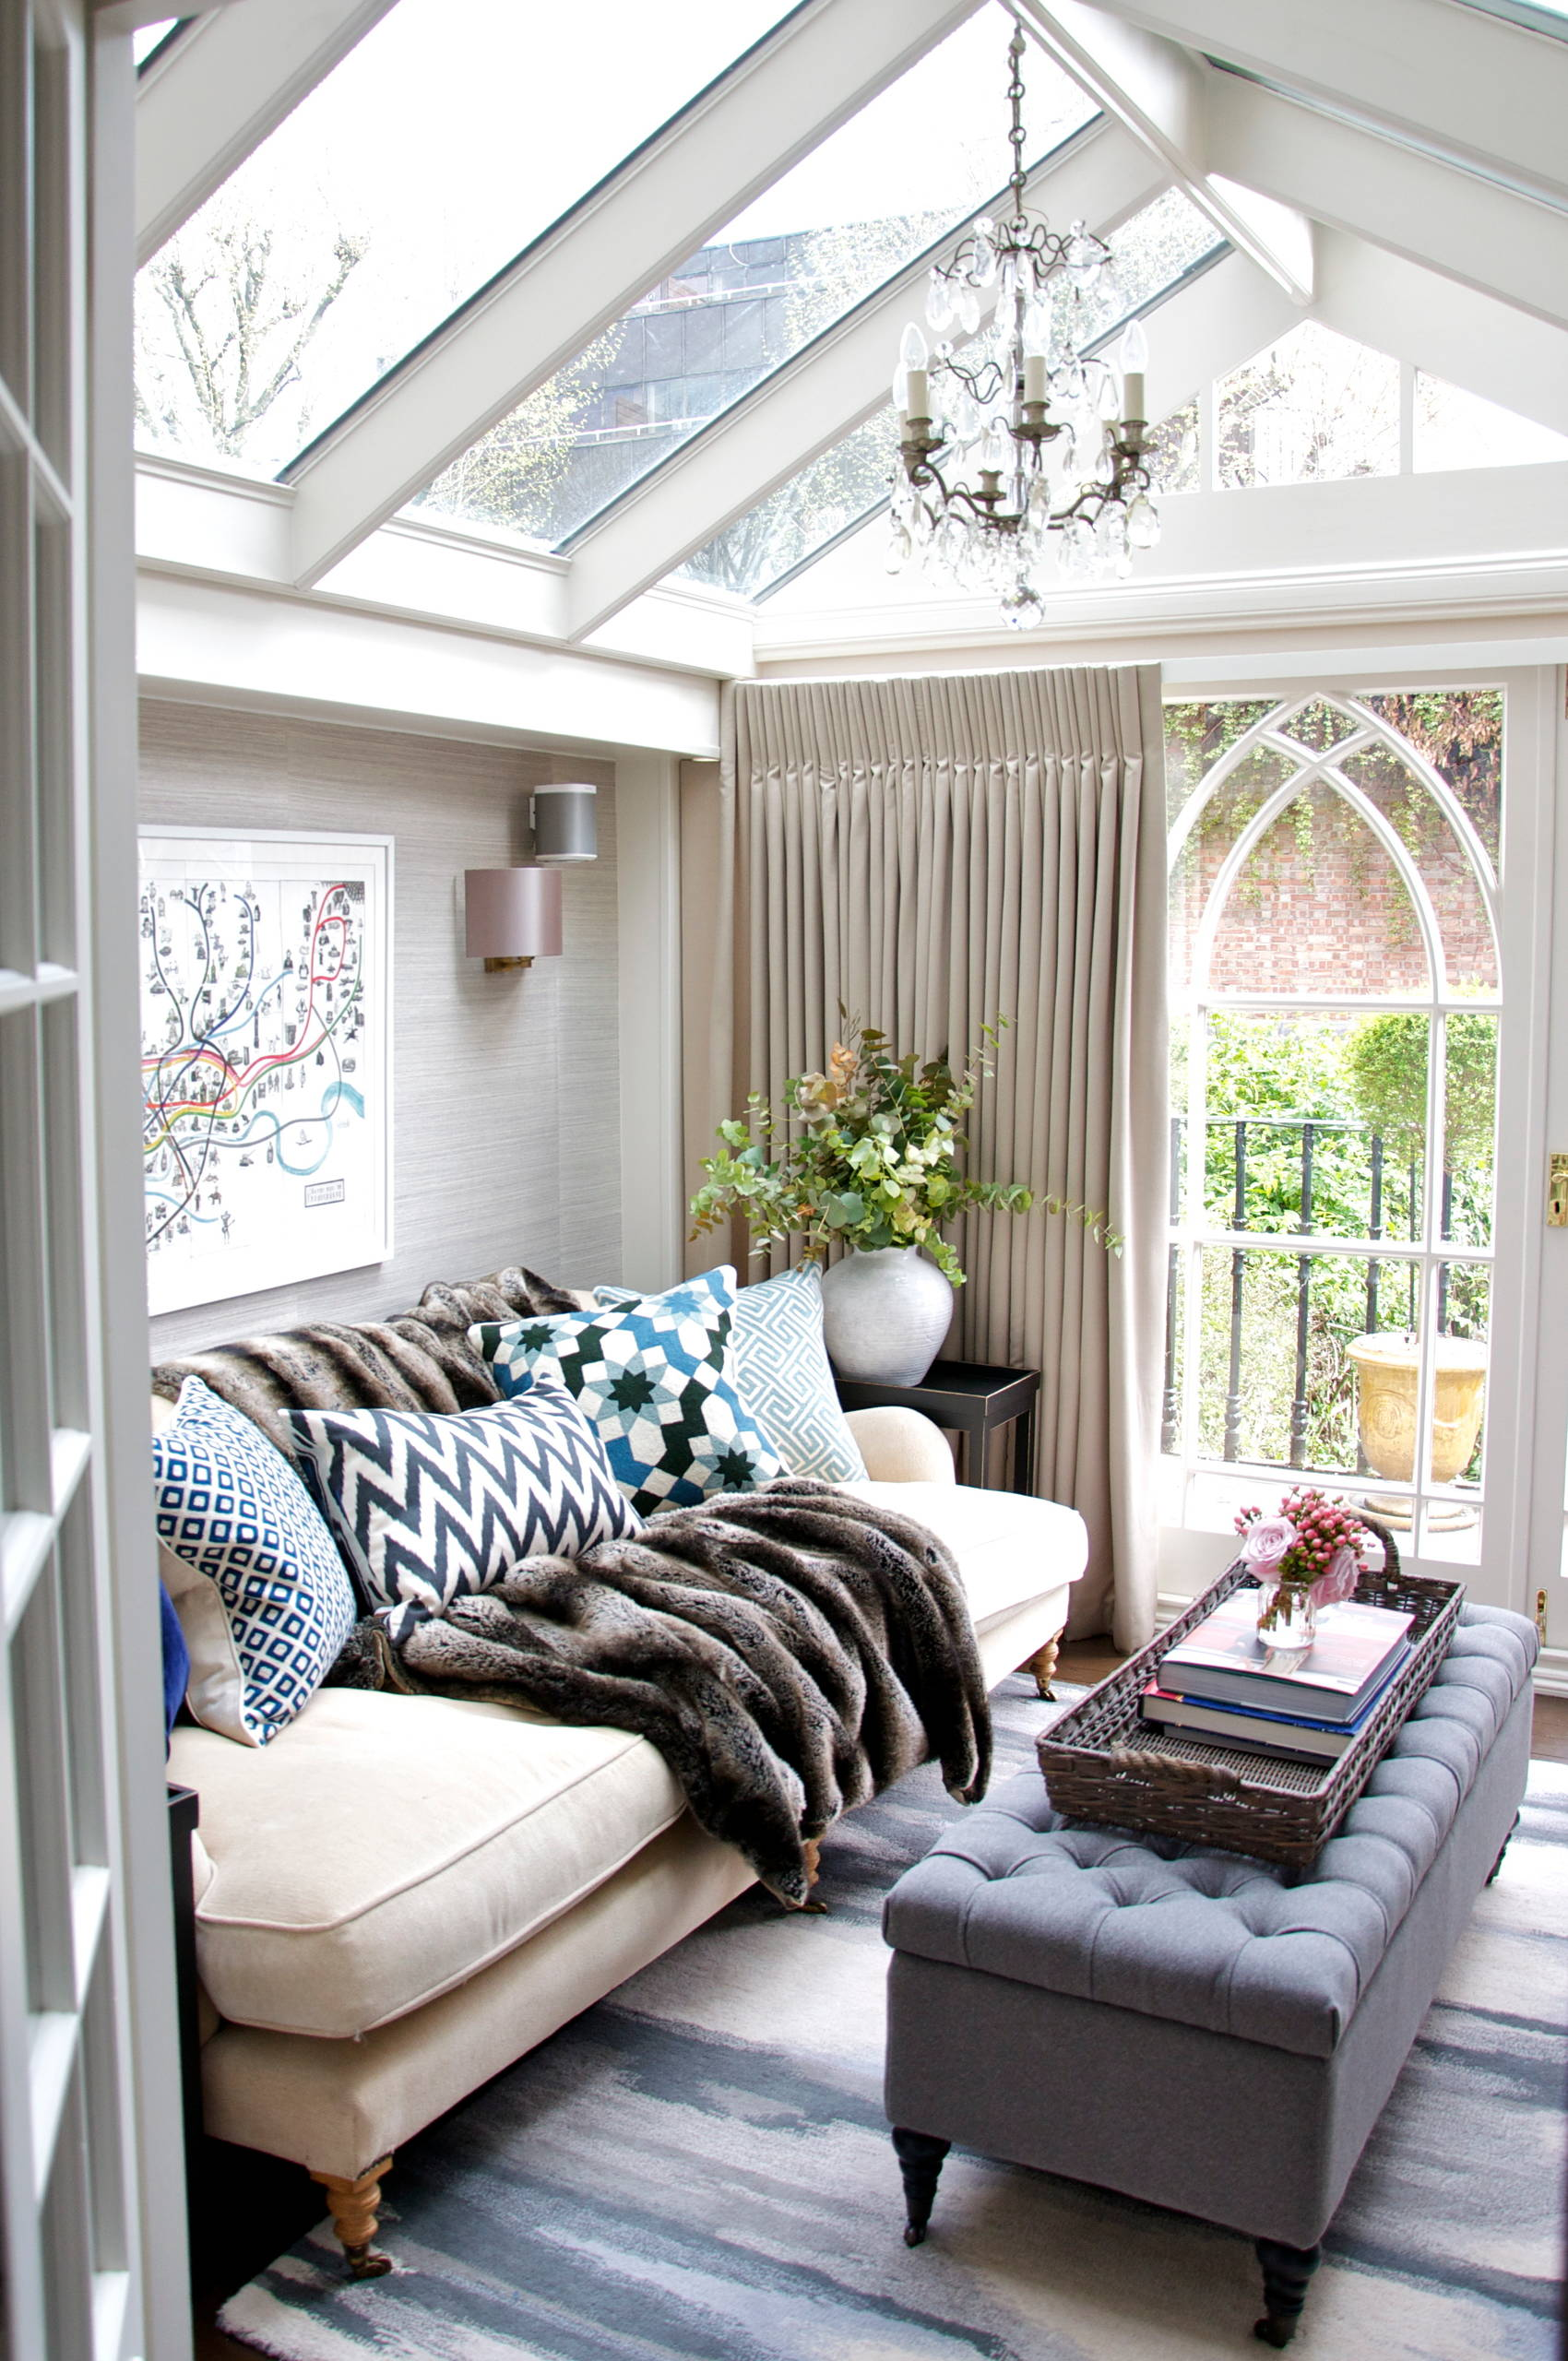 traditional-sunroom-faux-fur-blanket-country-couch-farmhouse-idea-coastal-home-sky-light-window-inspiration-winter-cozy-decor-couch-shop-room-ideas-wallpaper-grass